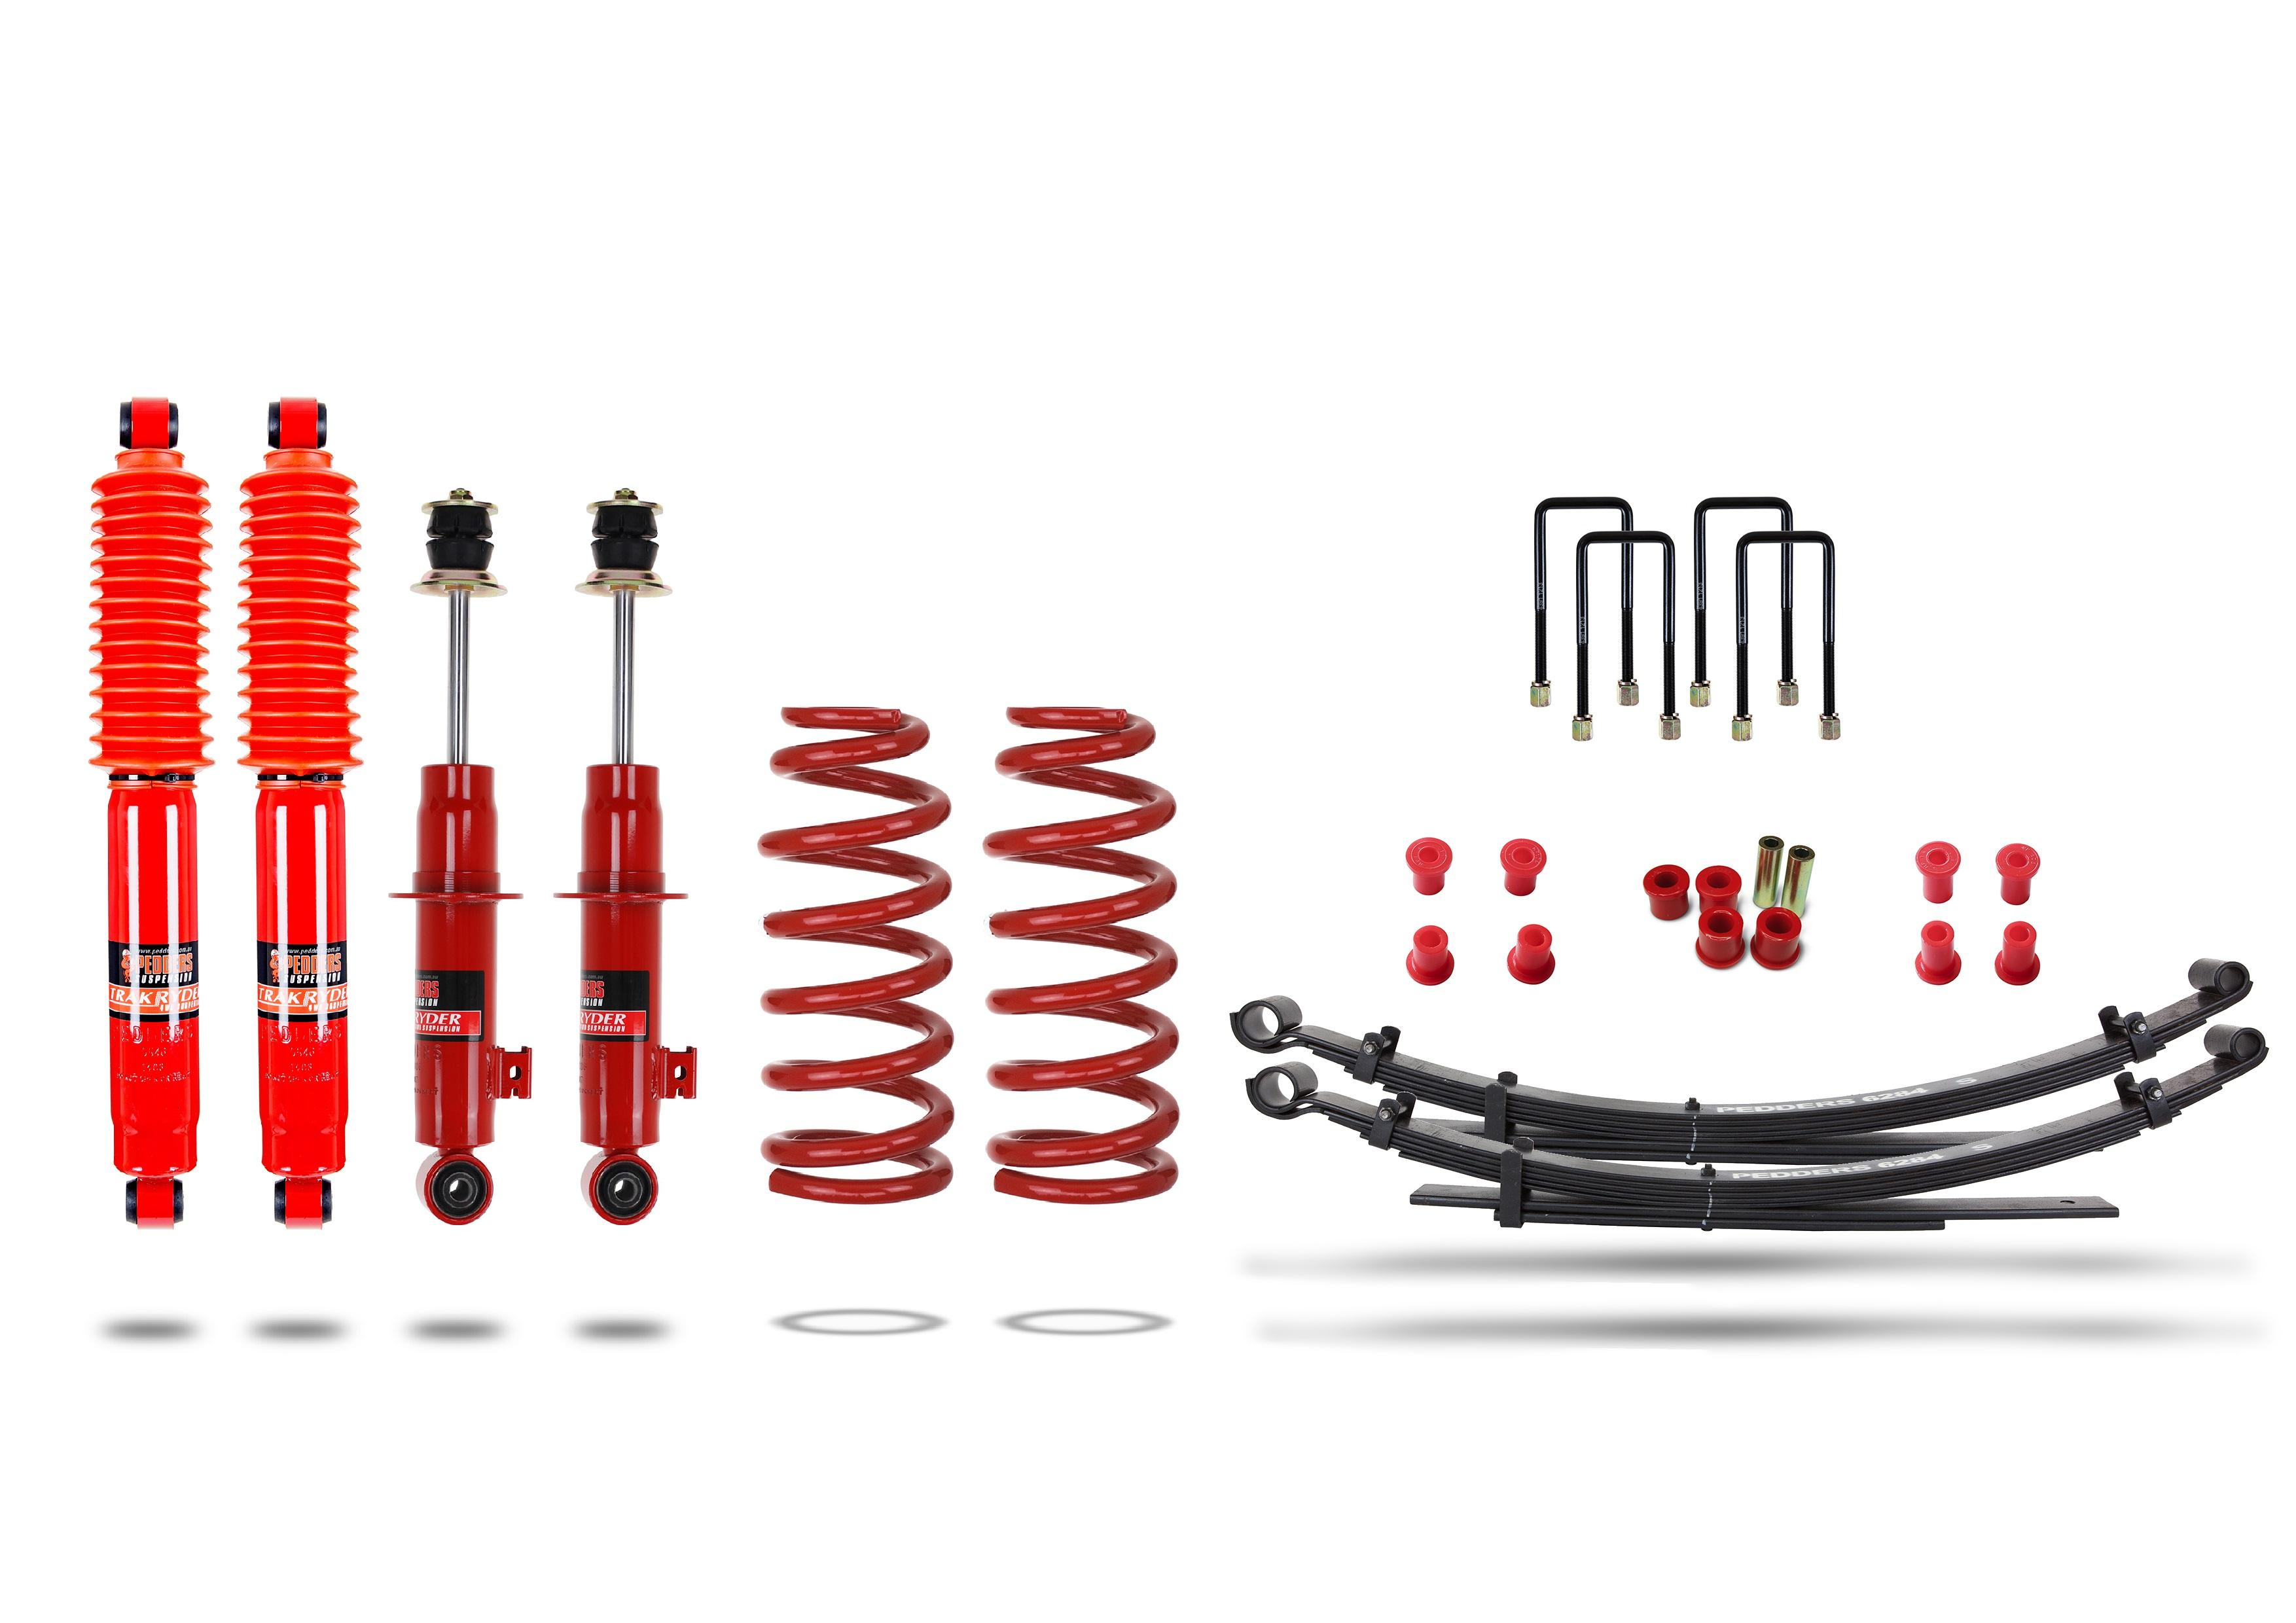 Outback 4x4 Kit 915018